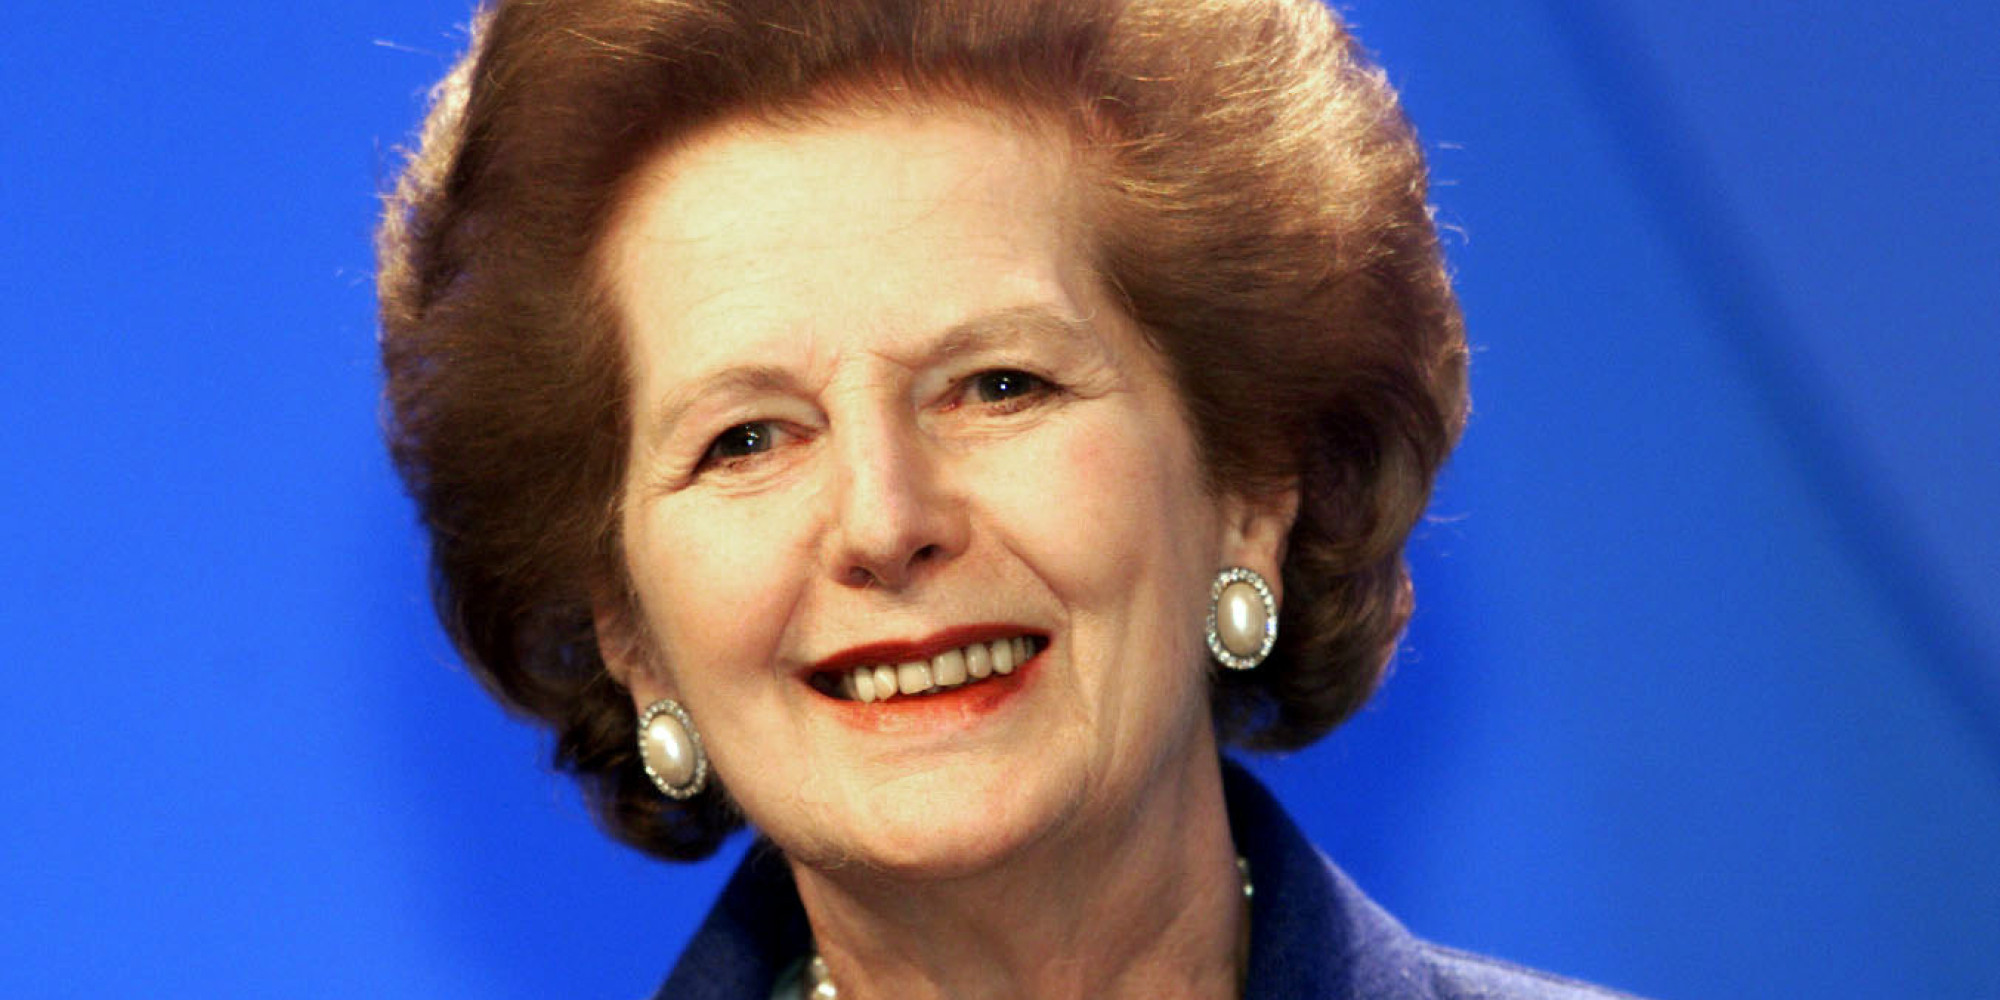 Margaret: Did Thatcher's Government Give Taxpayers' Money To